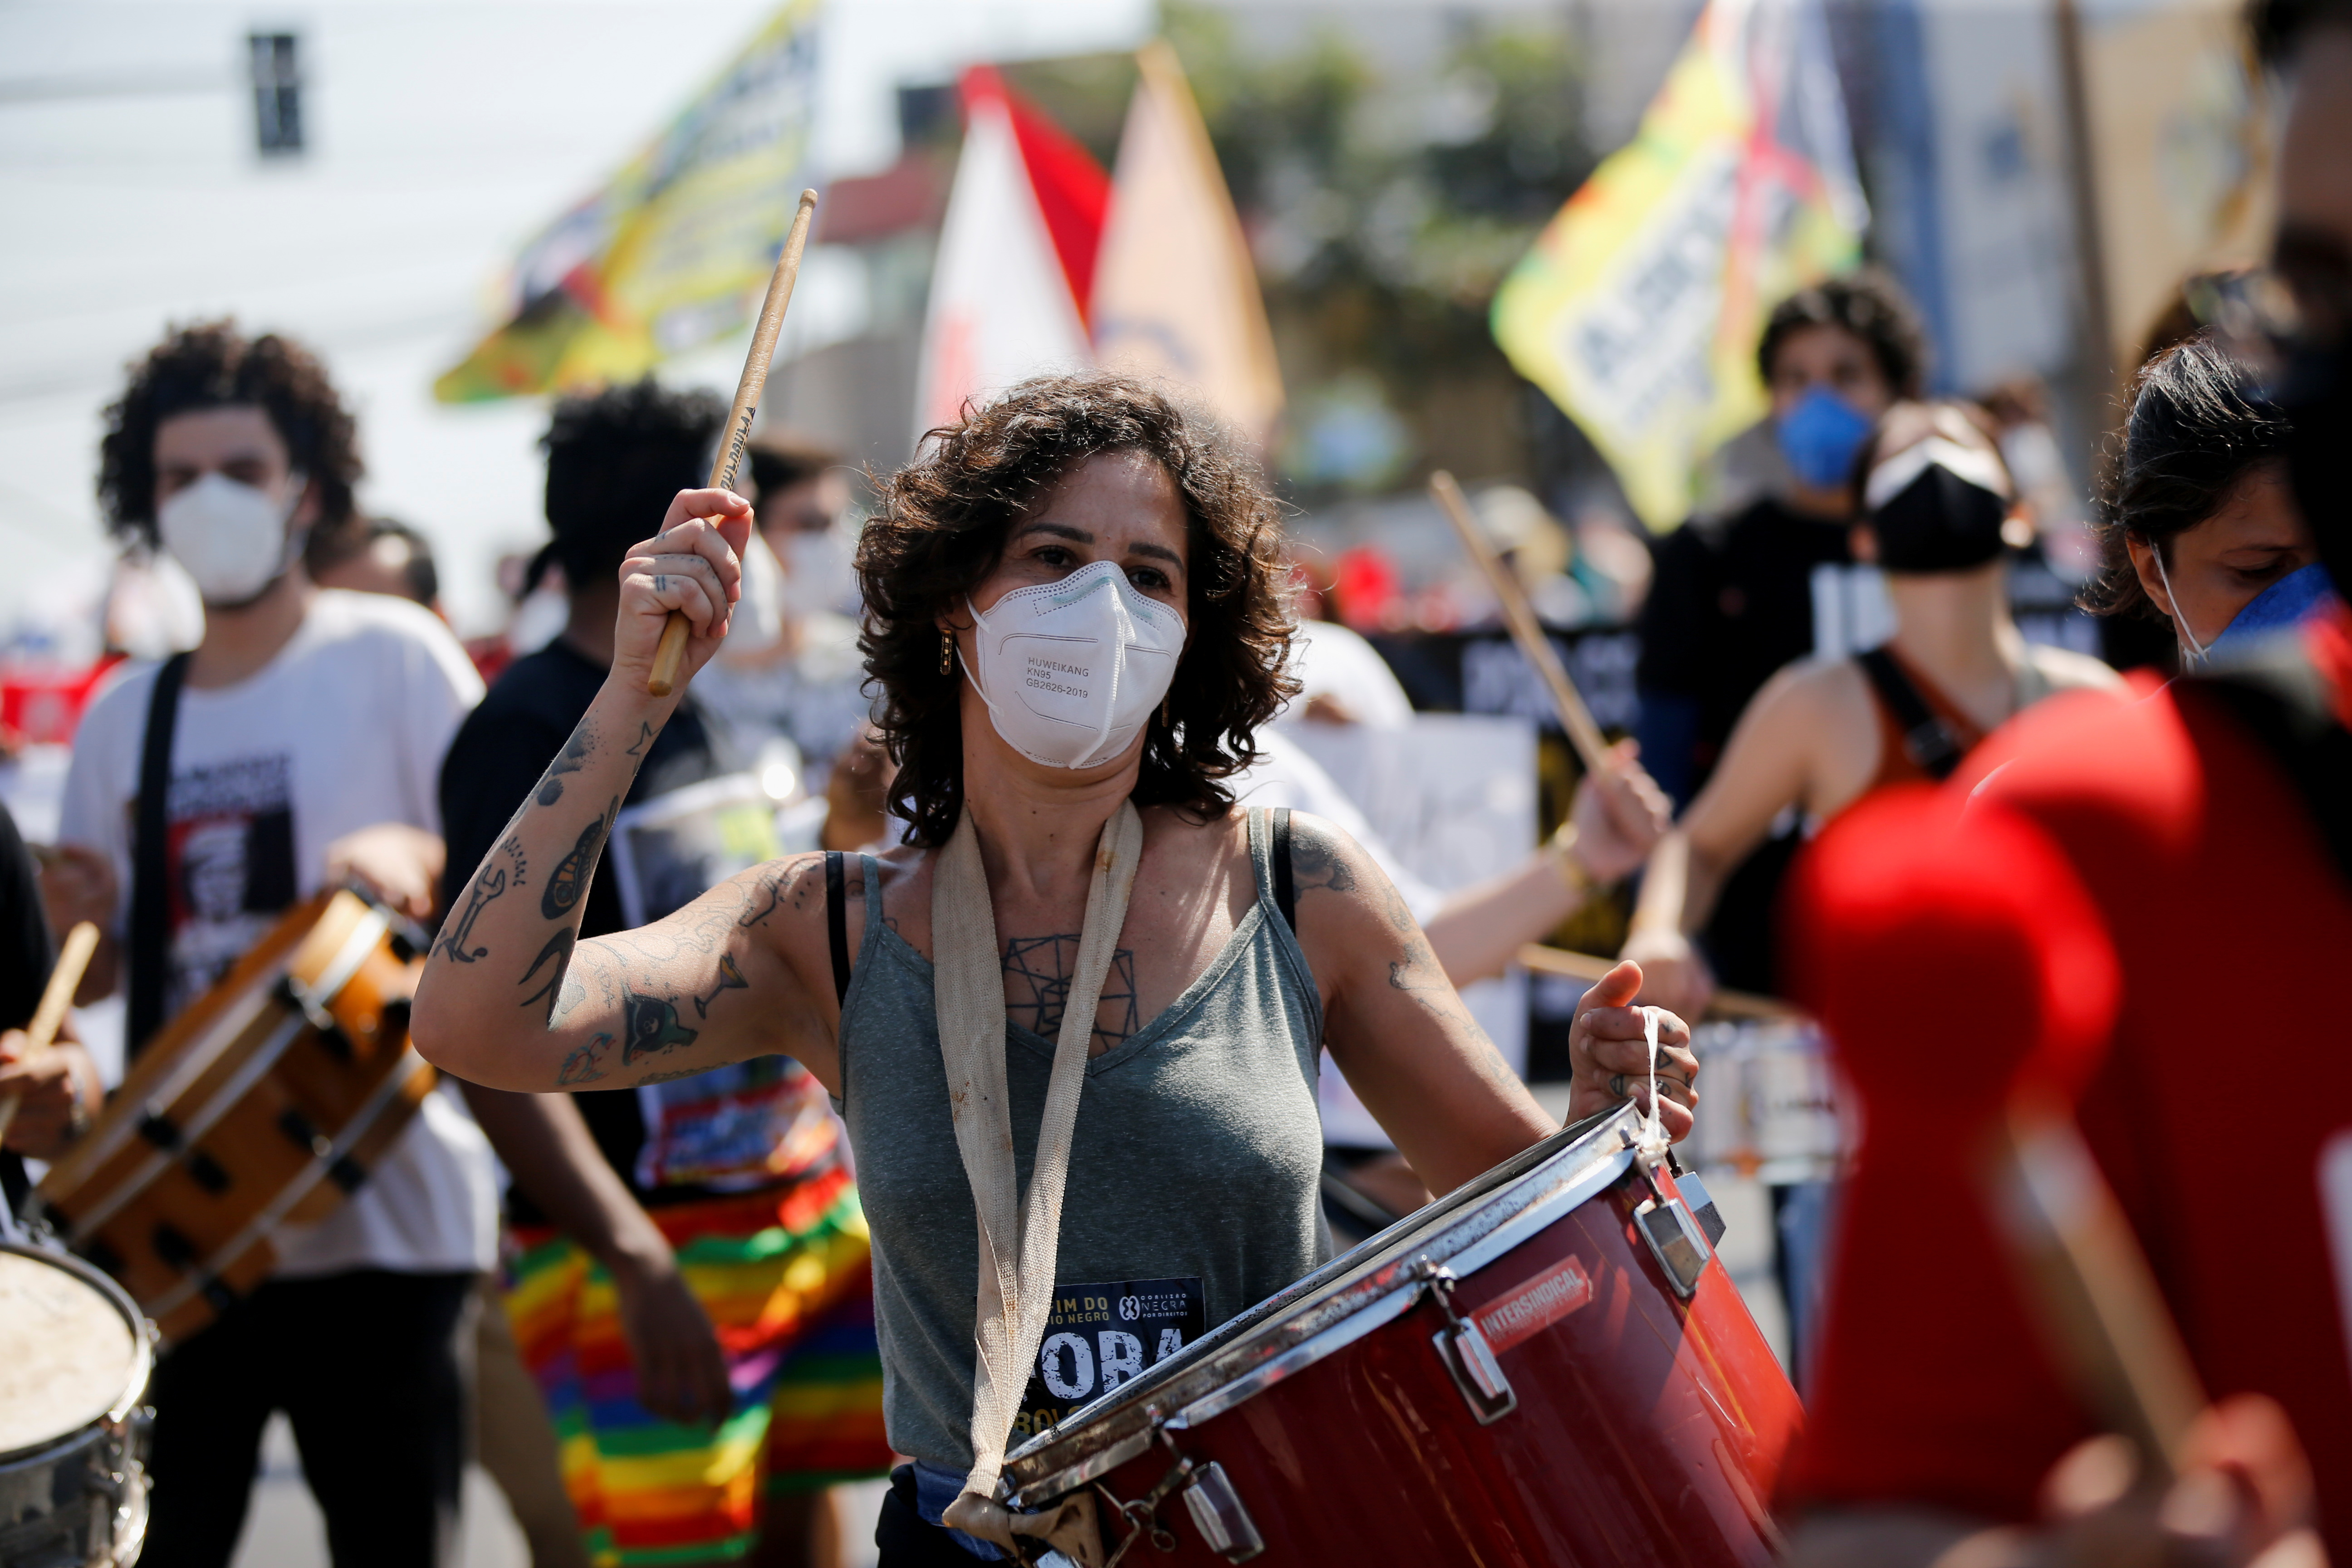 People participate in a protest against Brazil's President Jair Bolsonaro and his handling of the coronavirus disease (COVID-19) pandemic in Cuiaba, Brazil, June 19, 2021. REUTERS/Mariana Greif